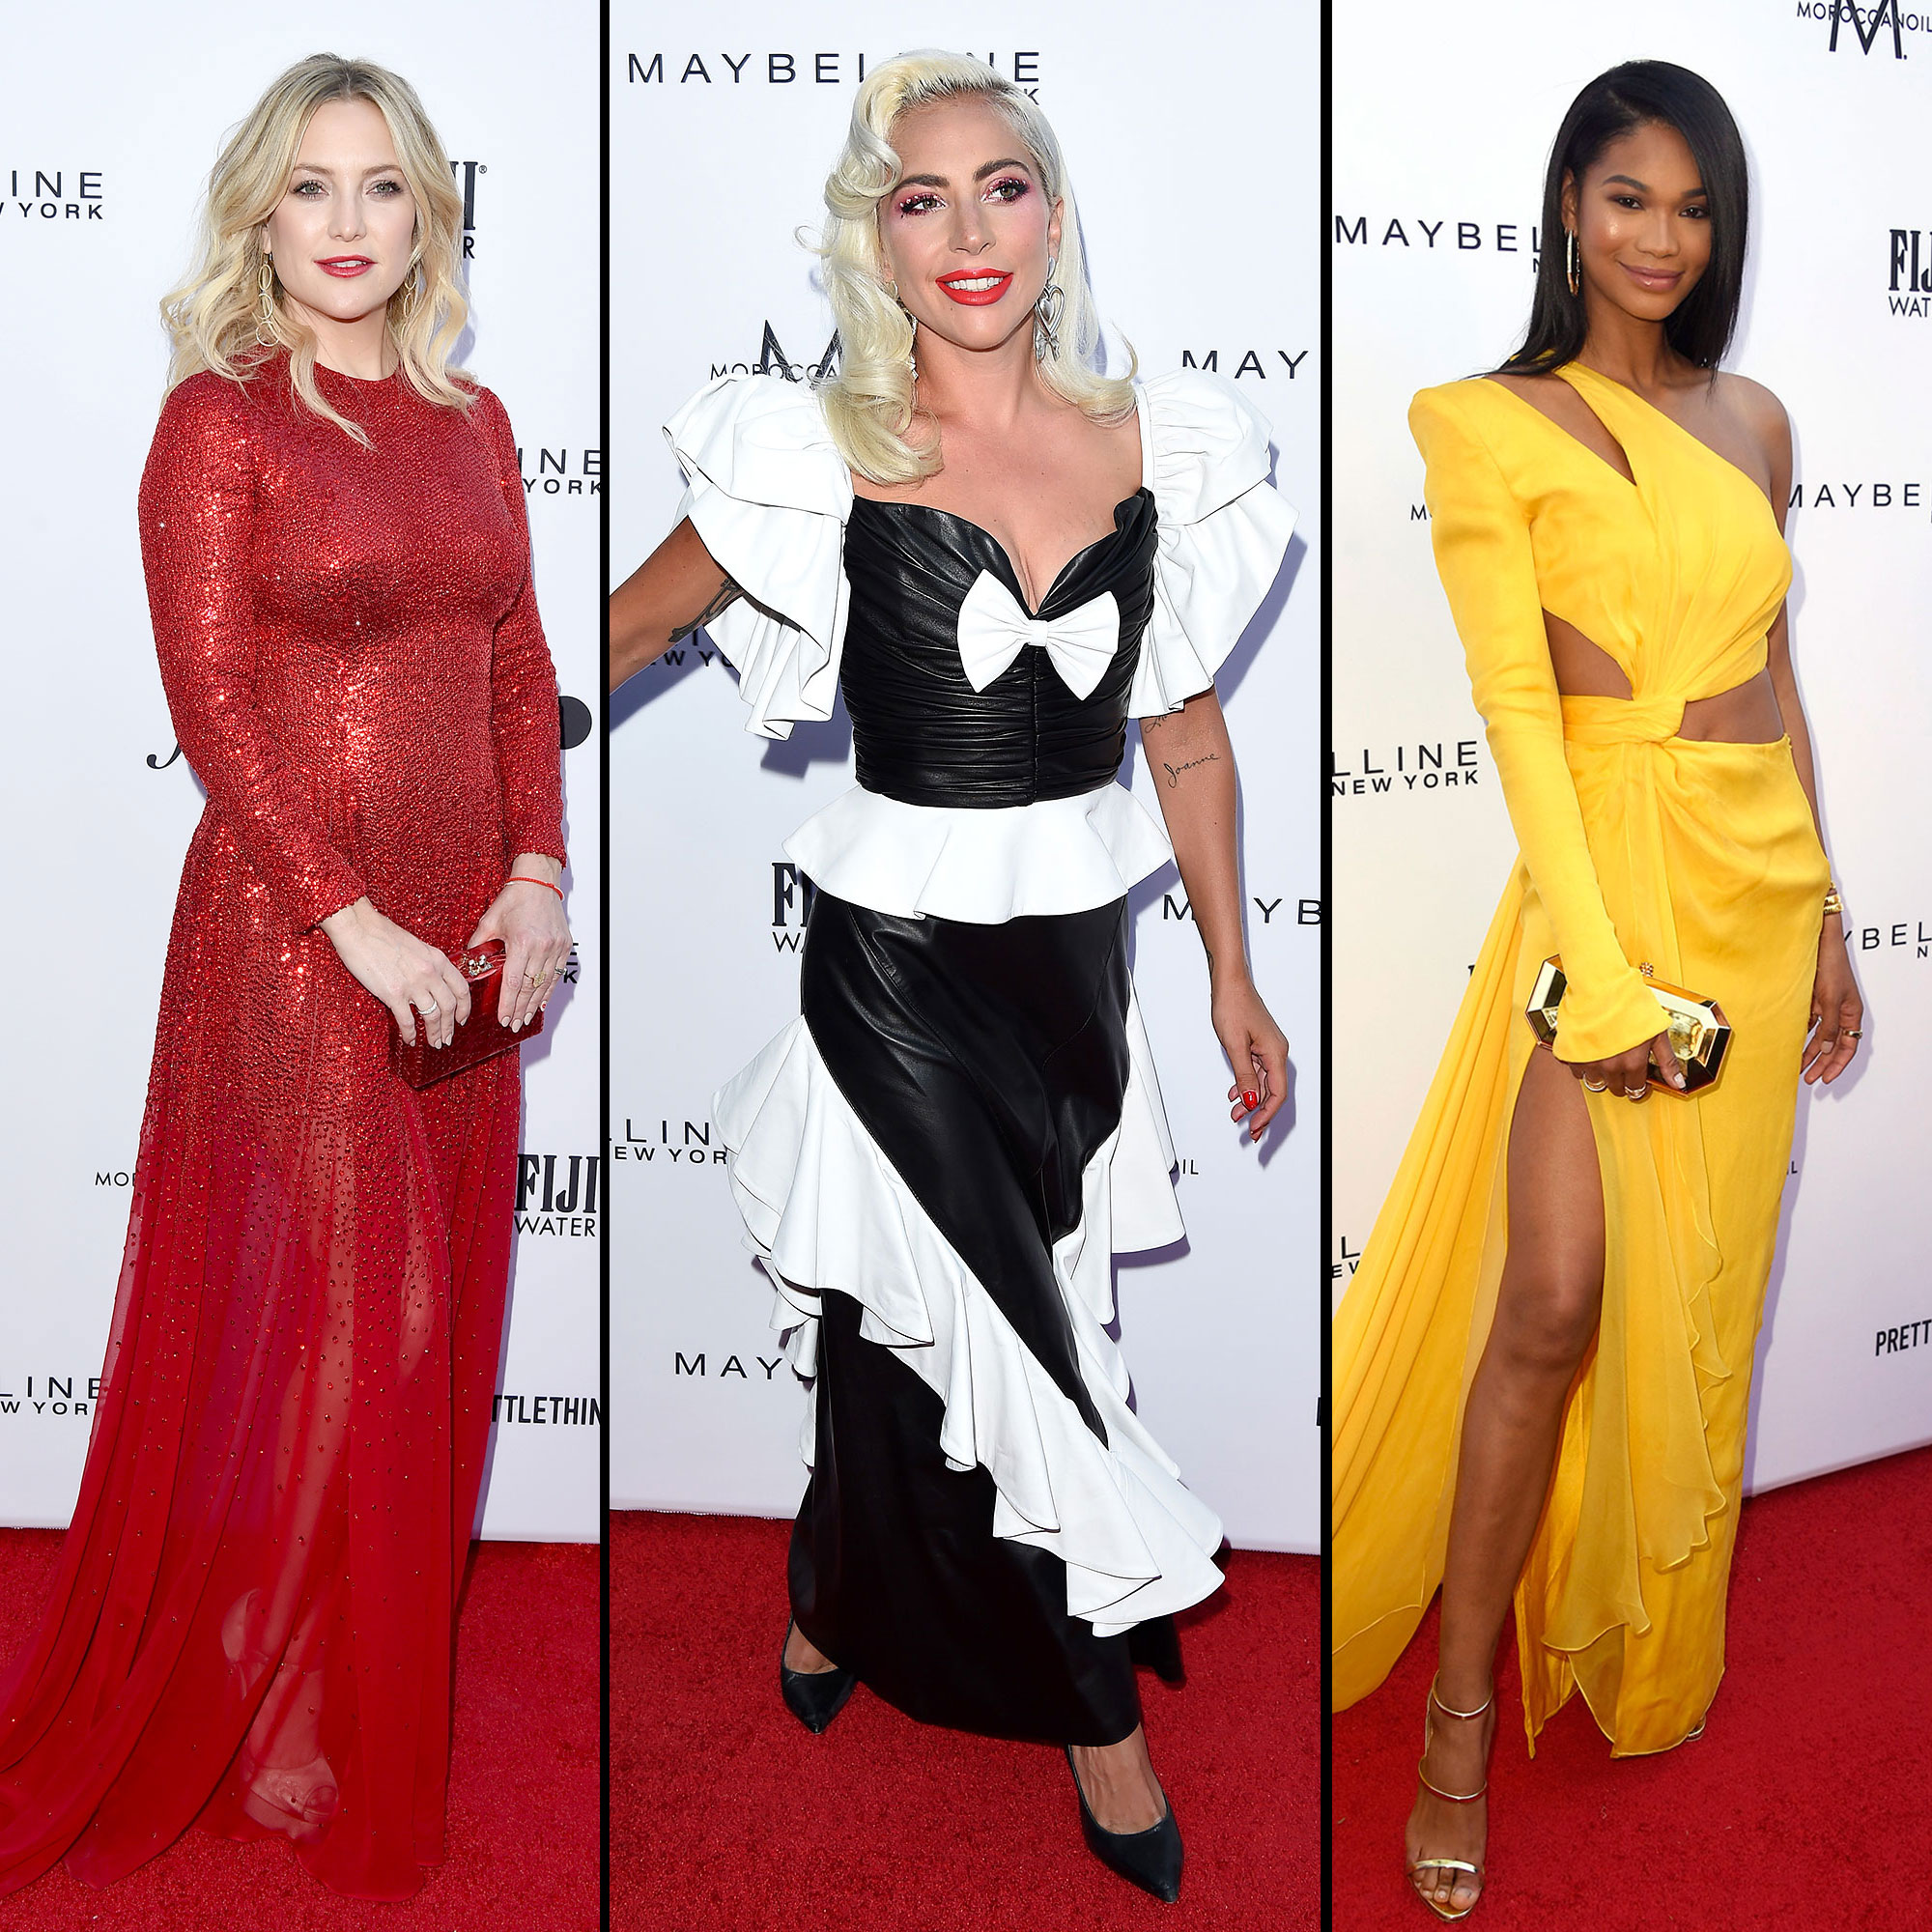 Stars Brought Their Style A-Game to the Daily Front Row Fashion Awards - Kate Hudson, Lady Gaga, and Chanel Iman